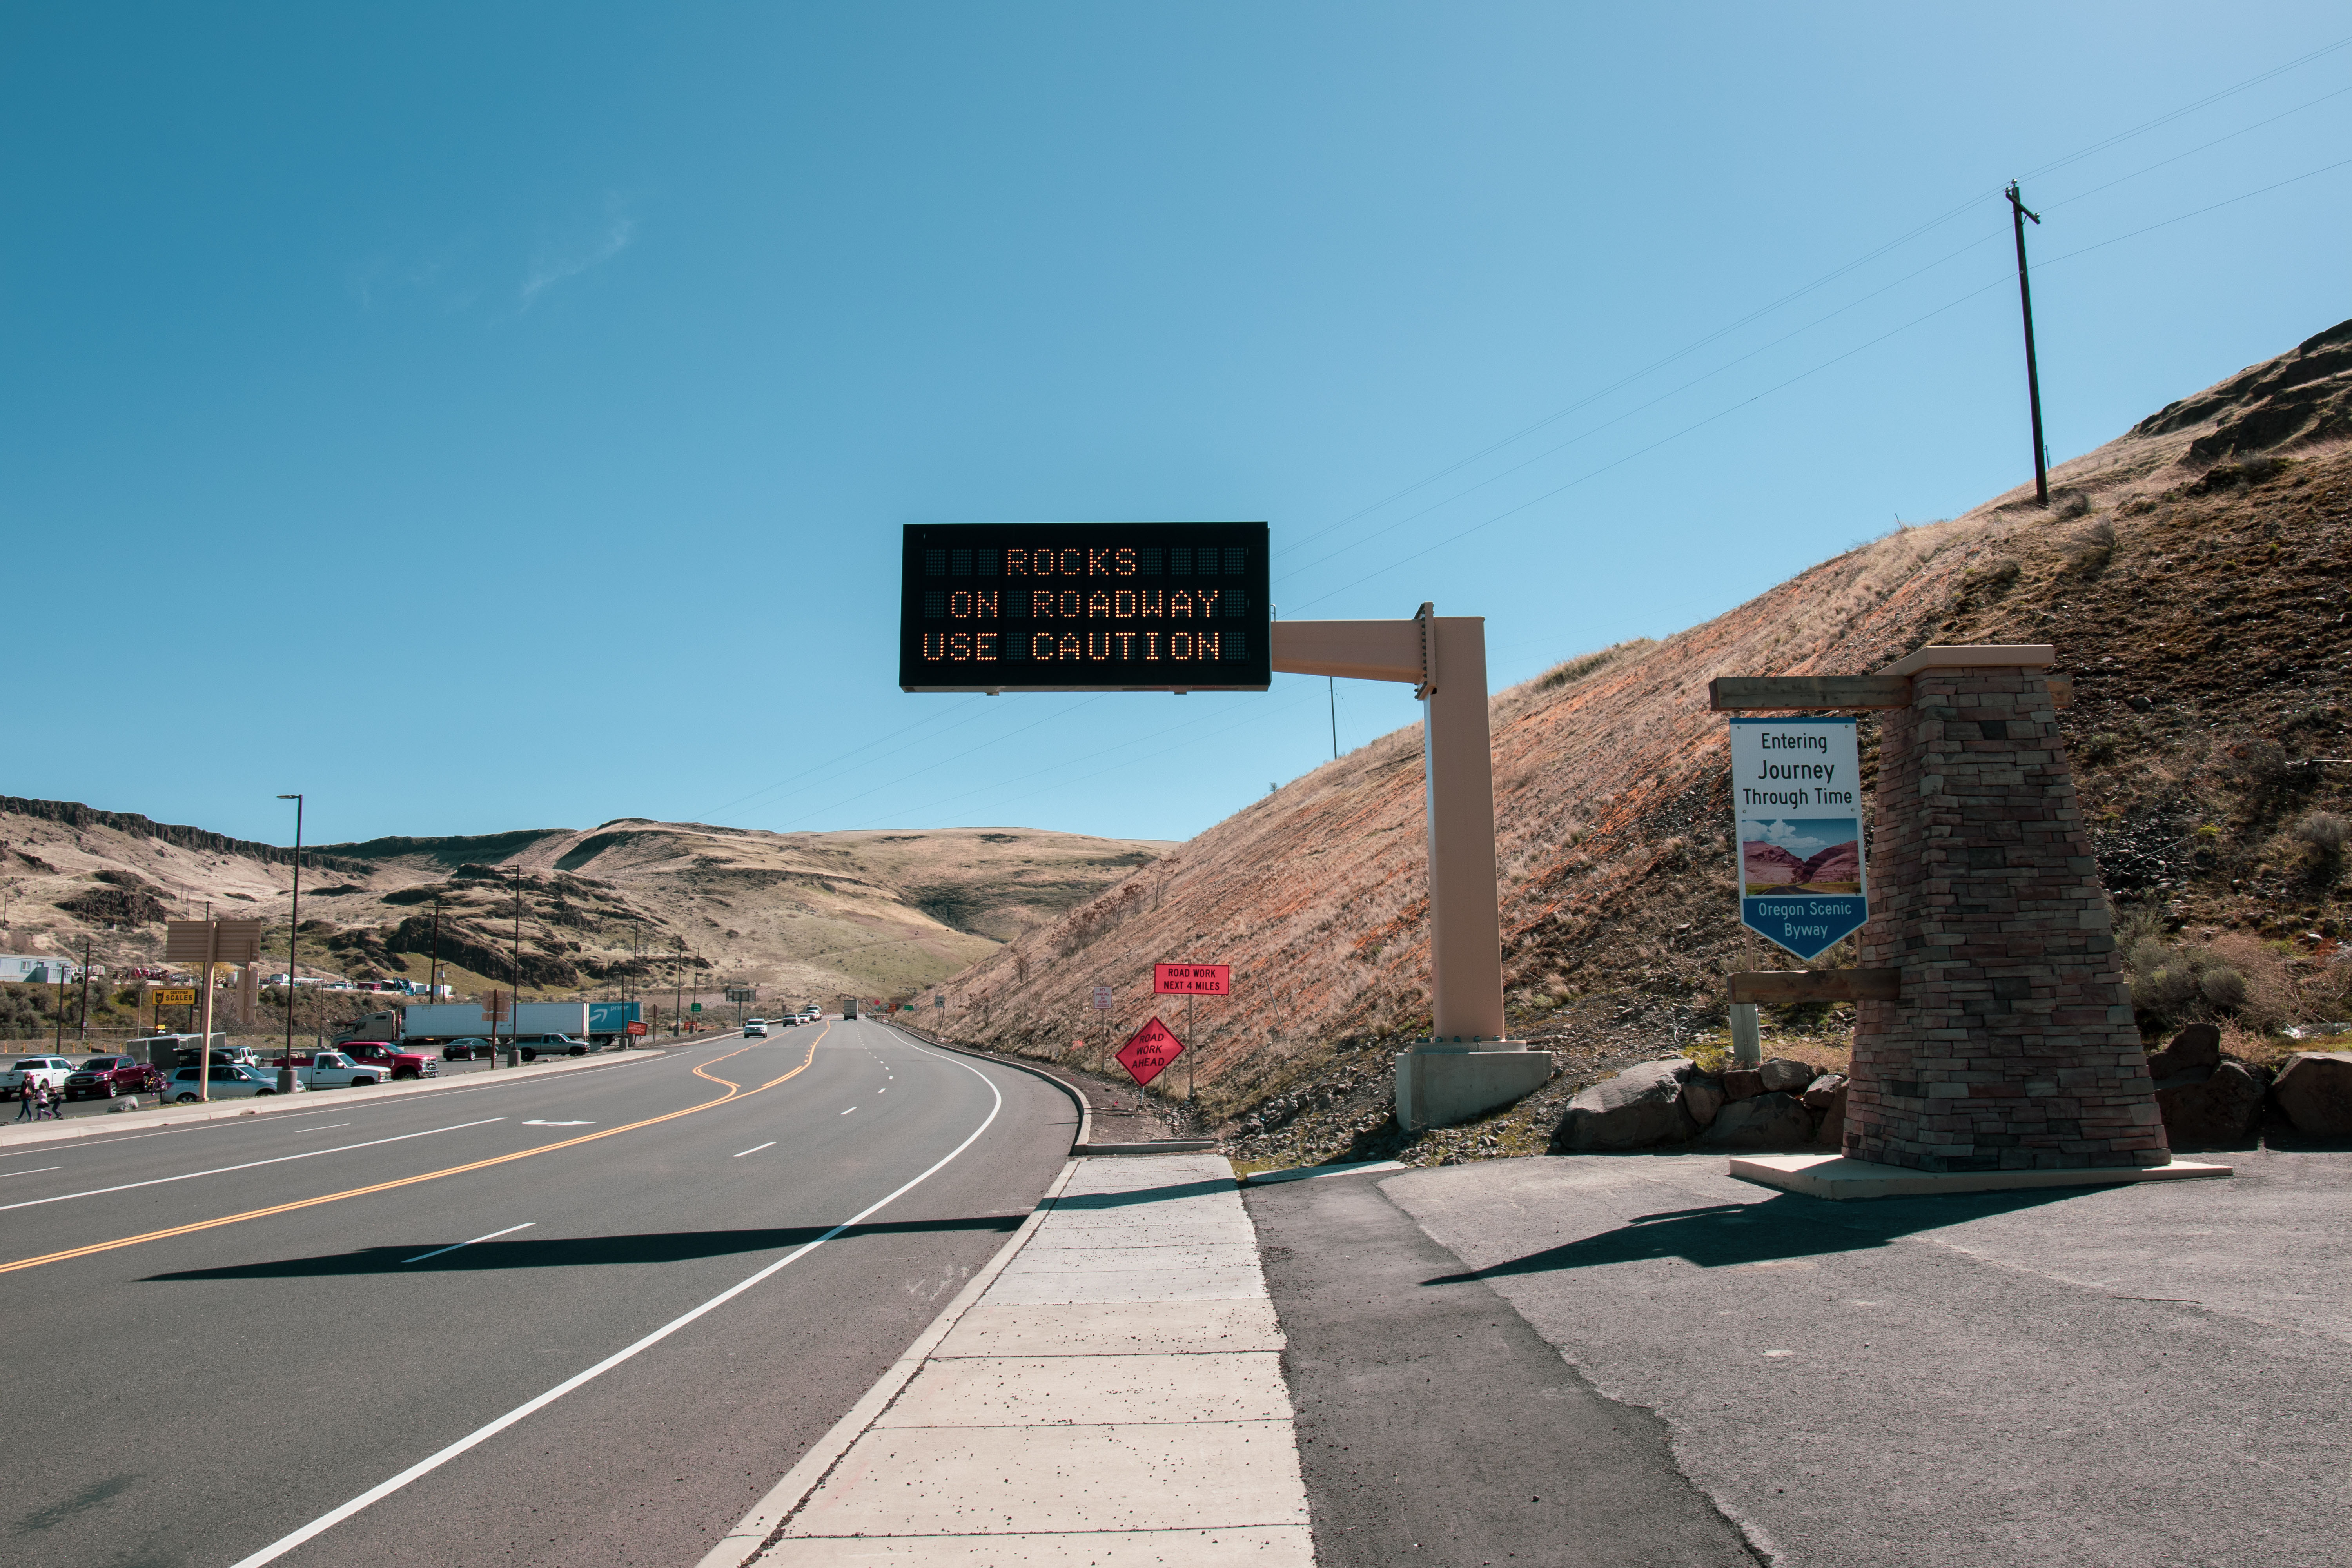 Variable message signage is becoming increasingly important for helping keep the public safe. We're ready with the proper equipment and expertise to make sure that public messages are broadcasted effectively along major highways in our region.